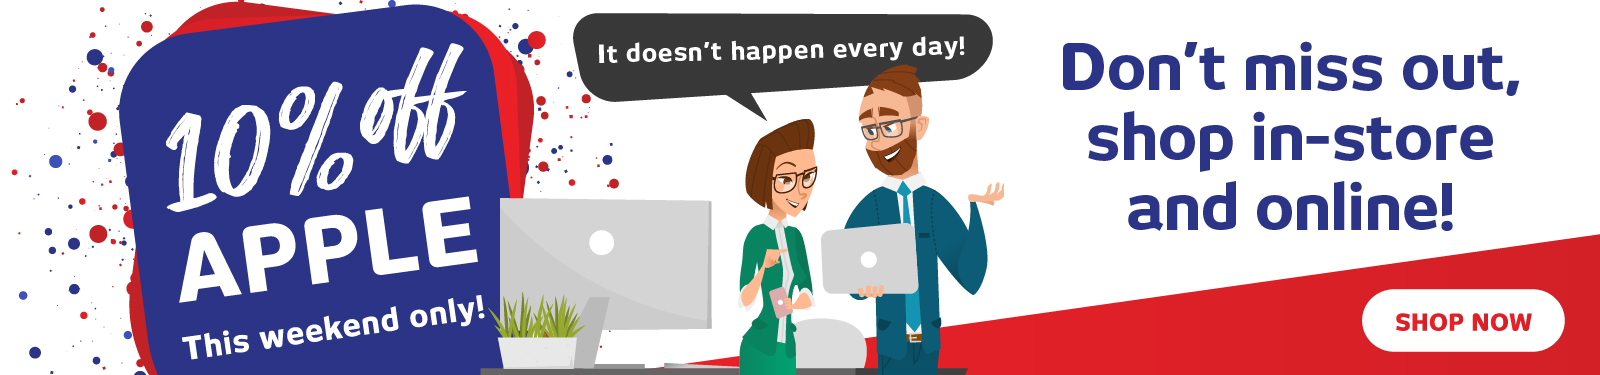 10% Off Apple